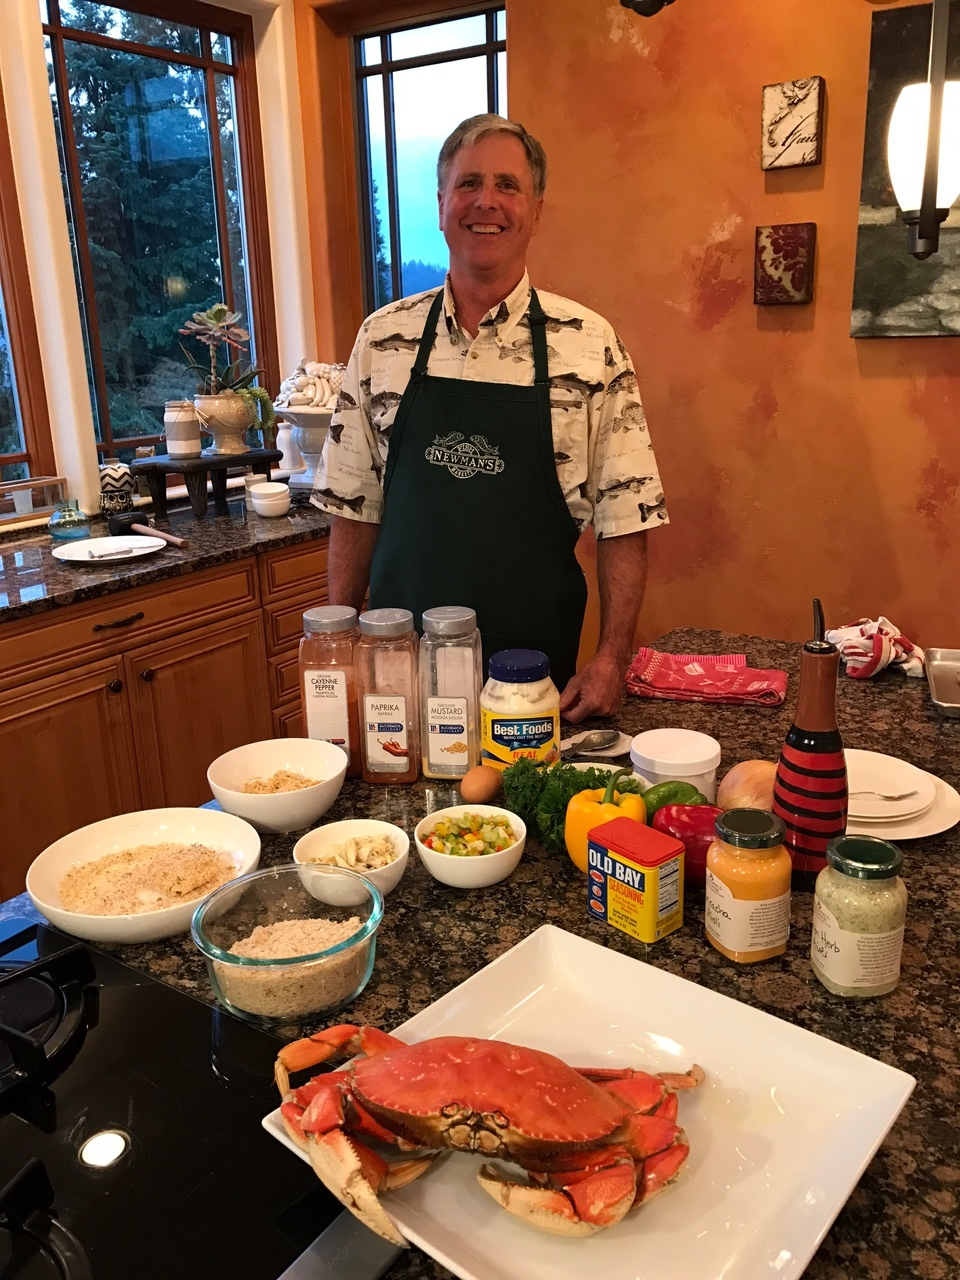 Watch Dwight's Fish & Tips video on how to make crab cakes .